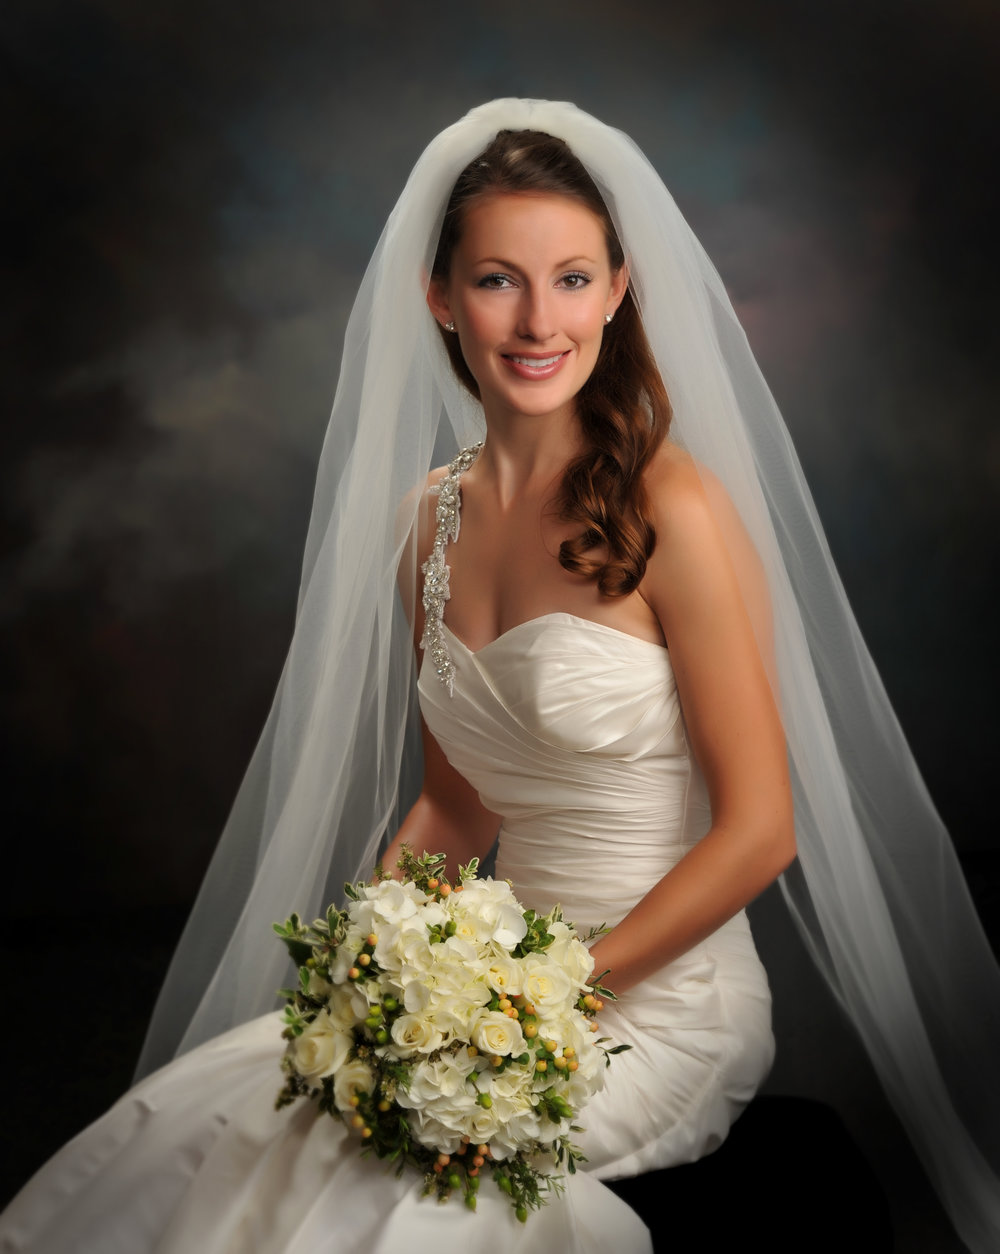 Caroline Norment-Thomas wedding june 11 2011 s.JPG